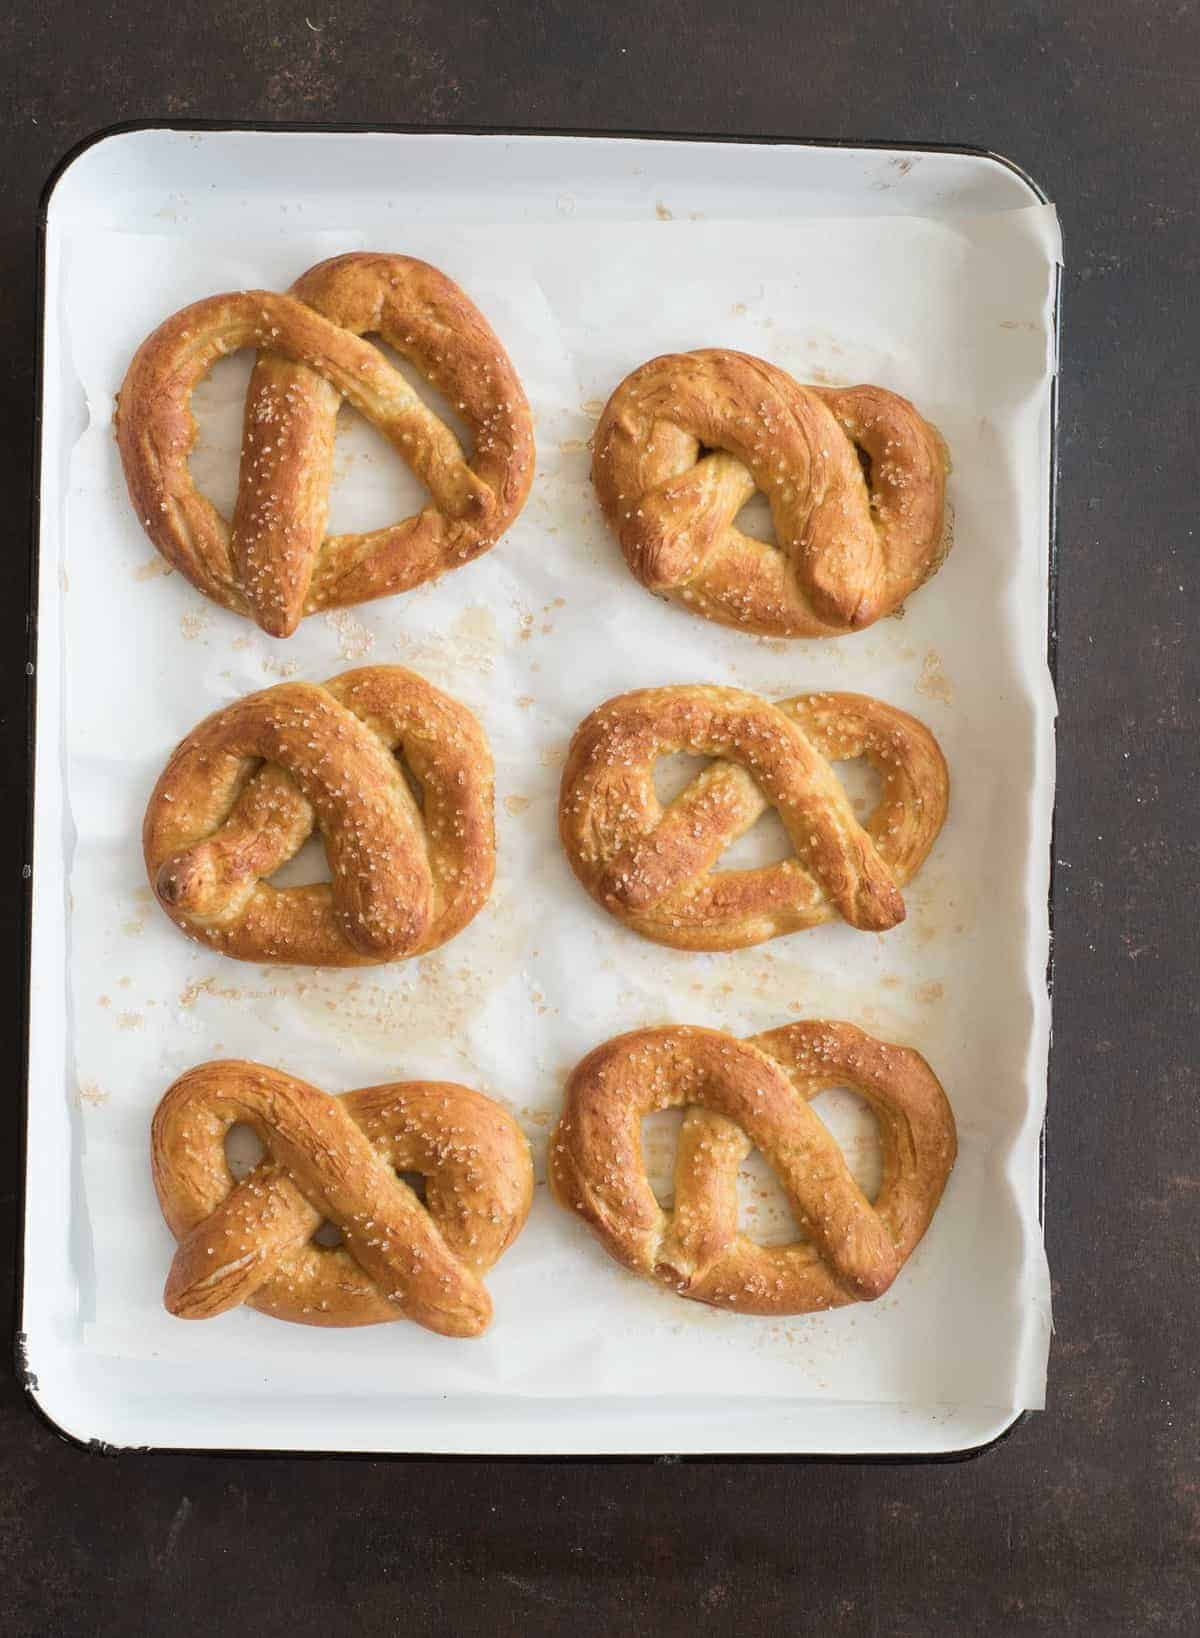 Big soft pretzels made from a simple dough, boiled, and then baked to golden perfection are one of our all time favorite salty and chewy treats.